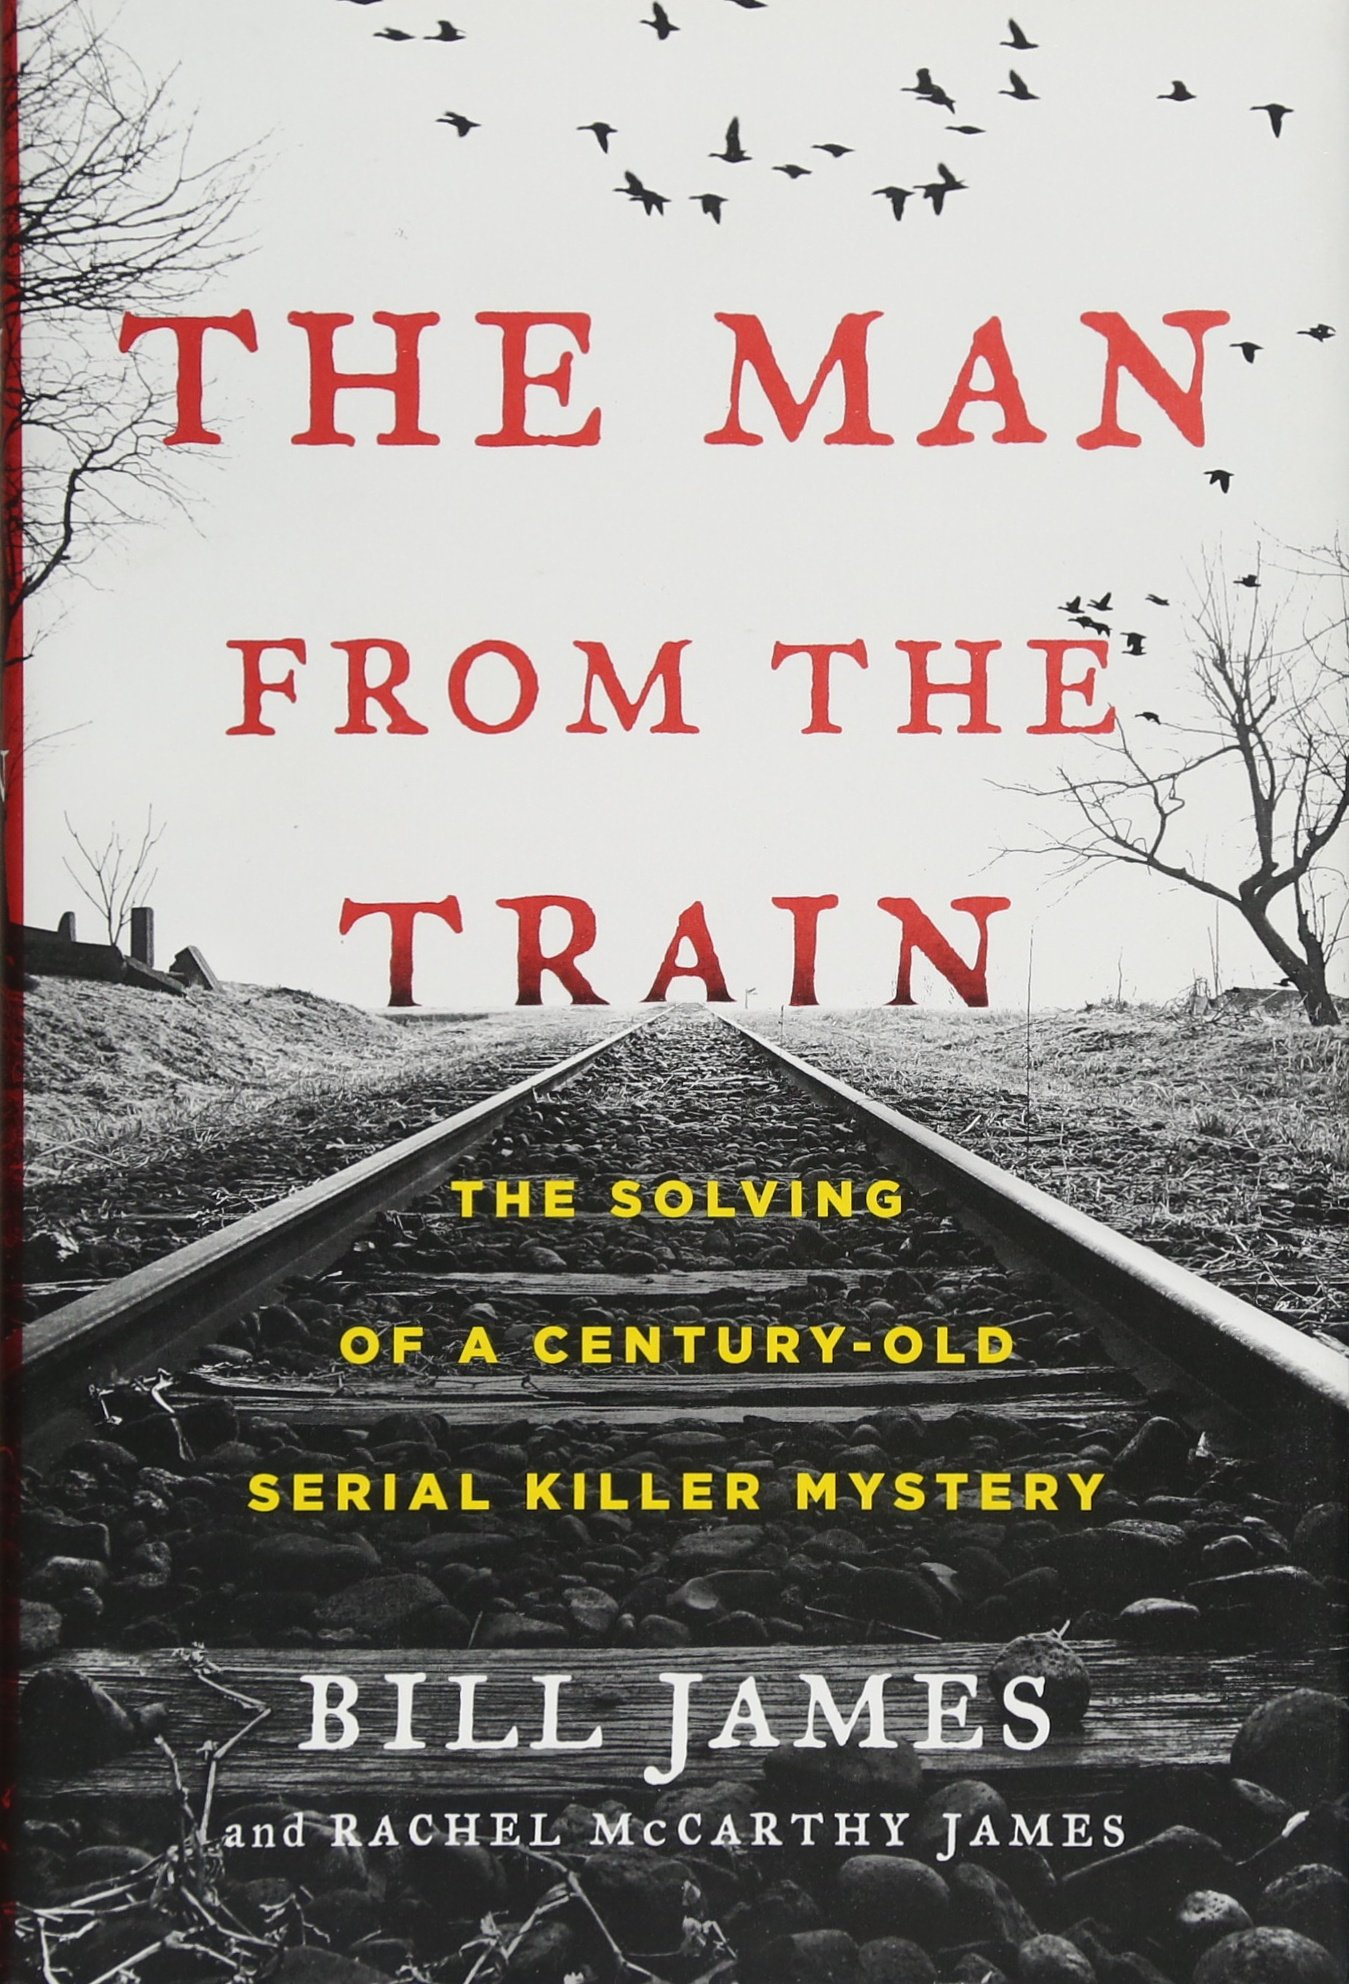 Essay On Business Ethics The Man From The Train The Solving Of A Centuryold Serial Killer Mystery  Bill James Rachel Mccarthy James  Amazoncom Books Essay About Healthy Lifestyle also Classification Essay Thesis The Man From The Train The Solving Of A Centuryold Serial Killer  Thesis Persuasive Essay